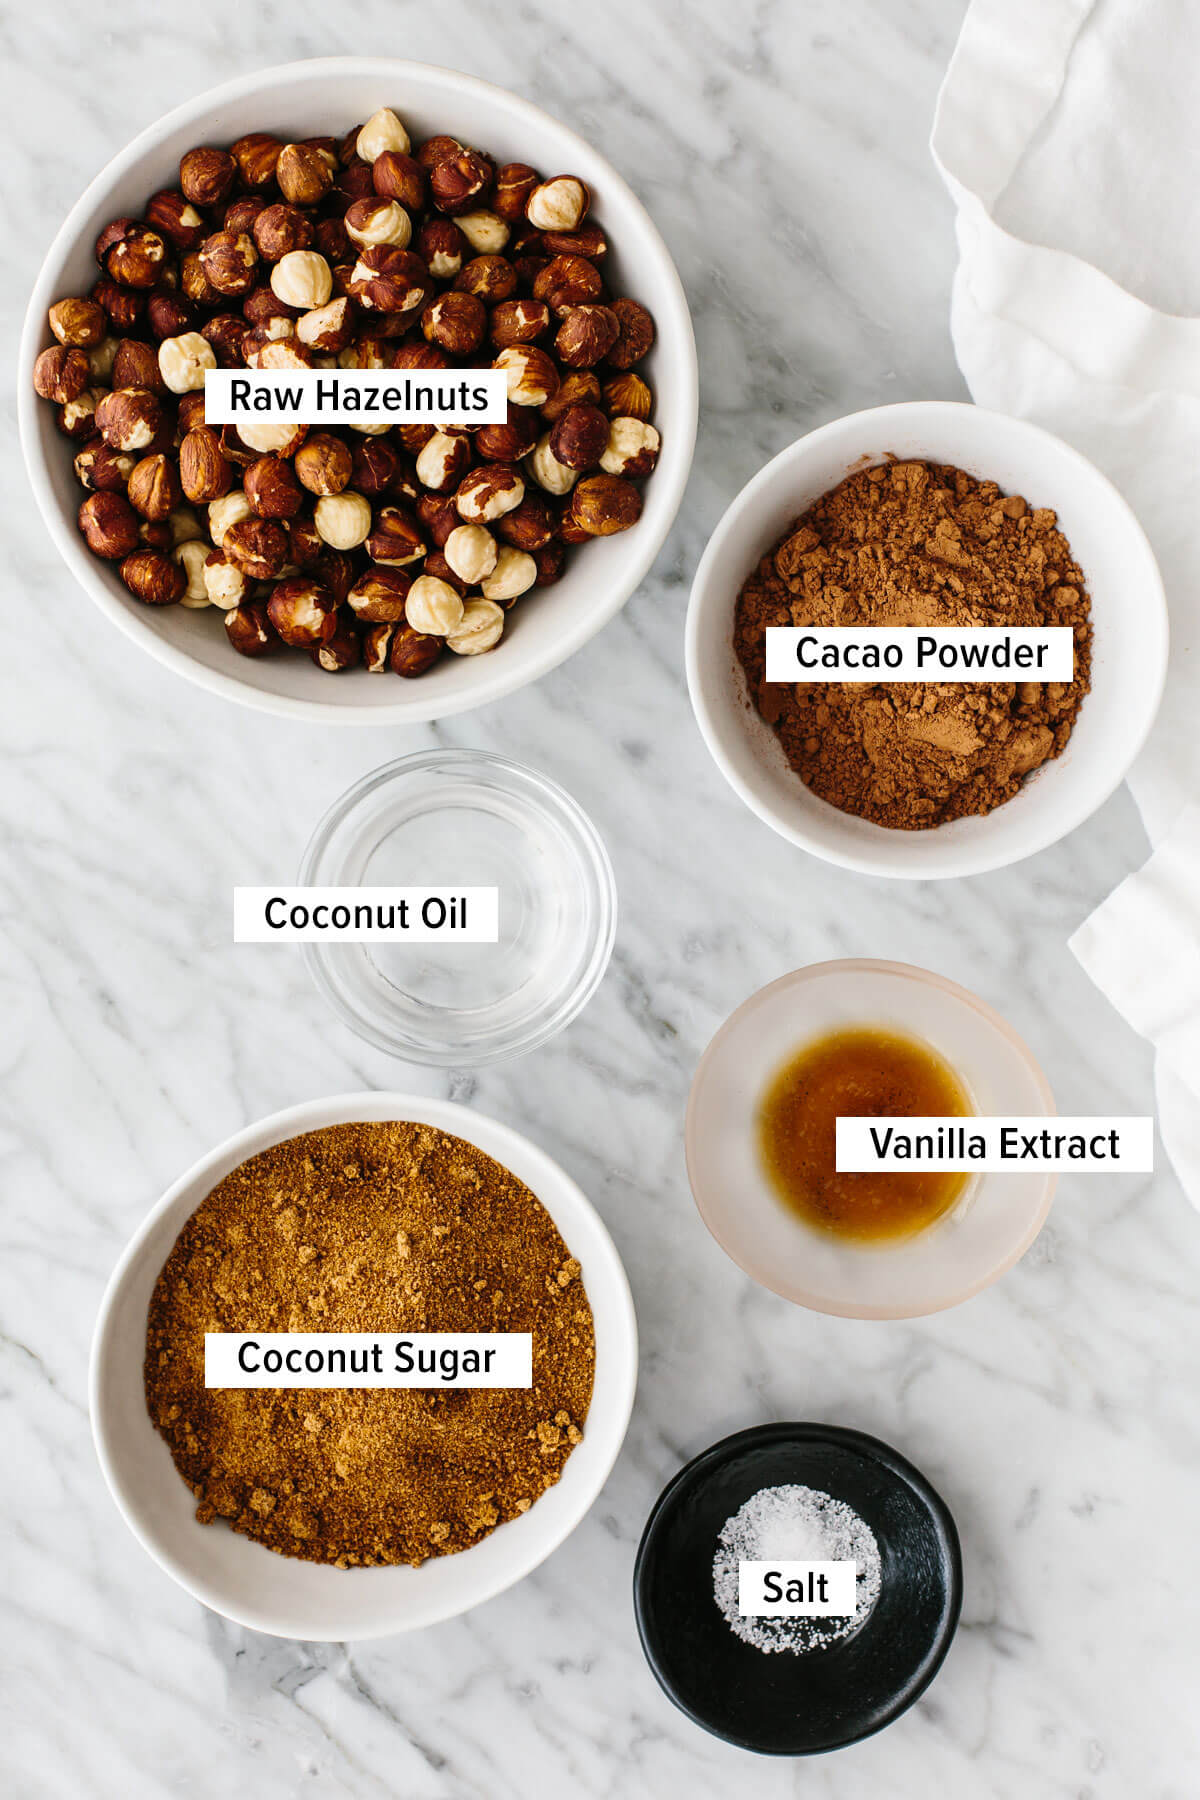 Ingredients for homemade Nutella on a table.